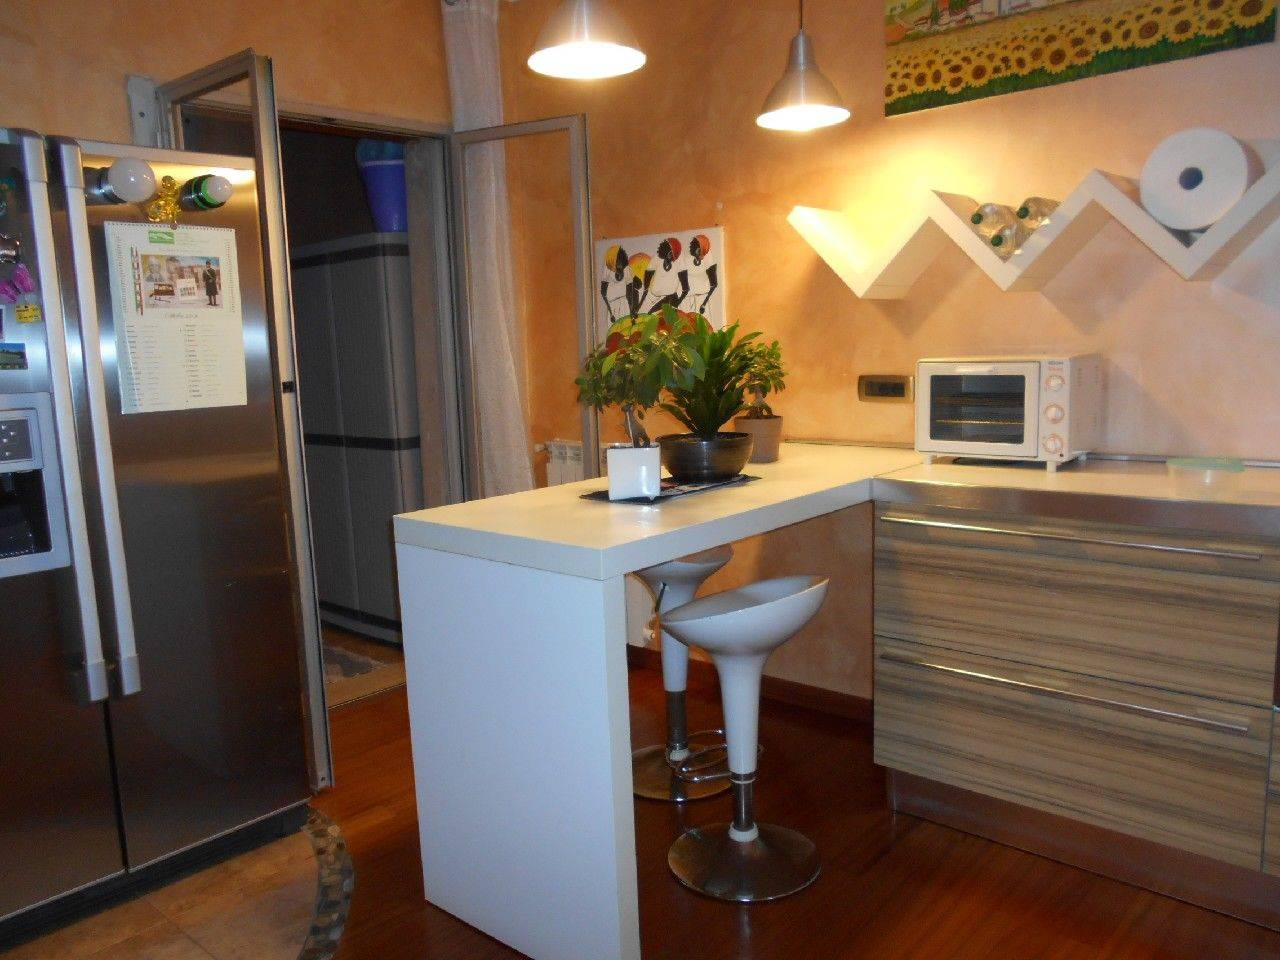 SANTA MARINELLA, Apartment for sale of 100 Sq. mt., Good condition, Heating Individual heating system, Energetic class: E, Epi: 200,51 kwh/m2 year,